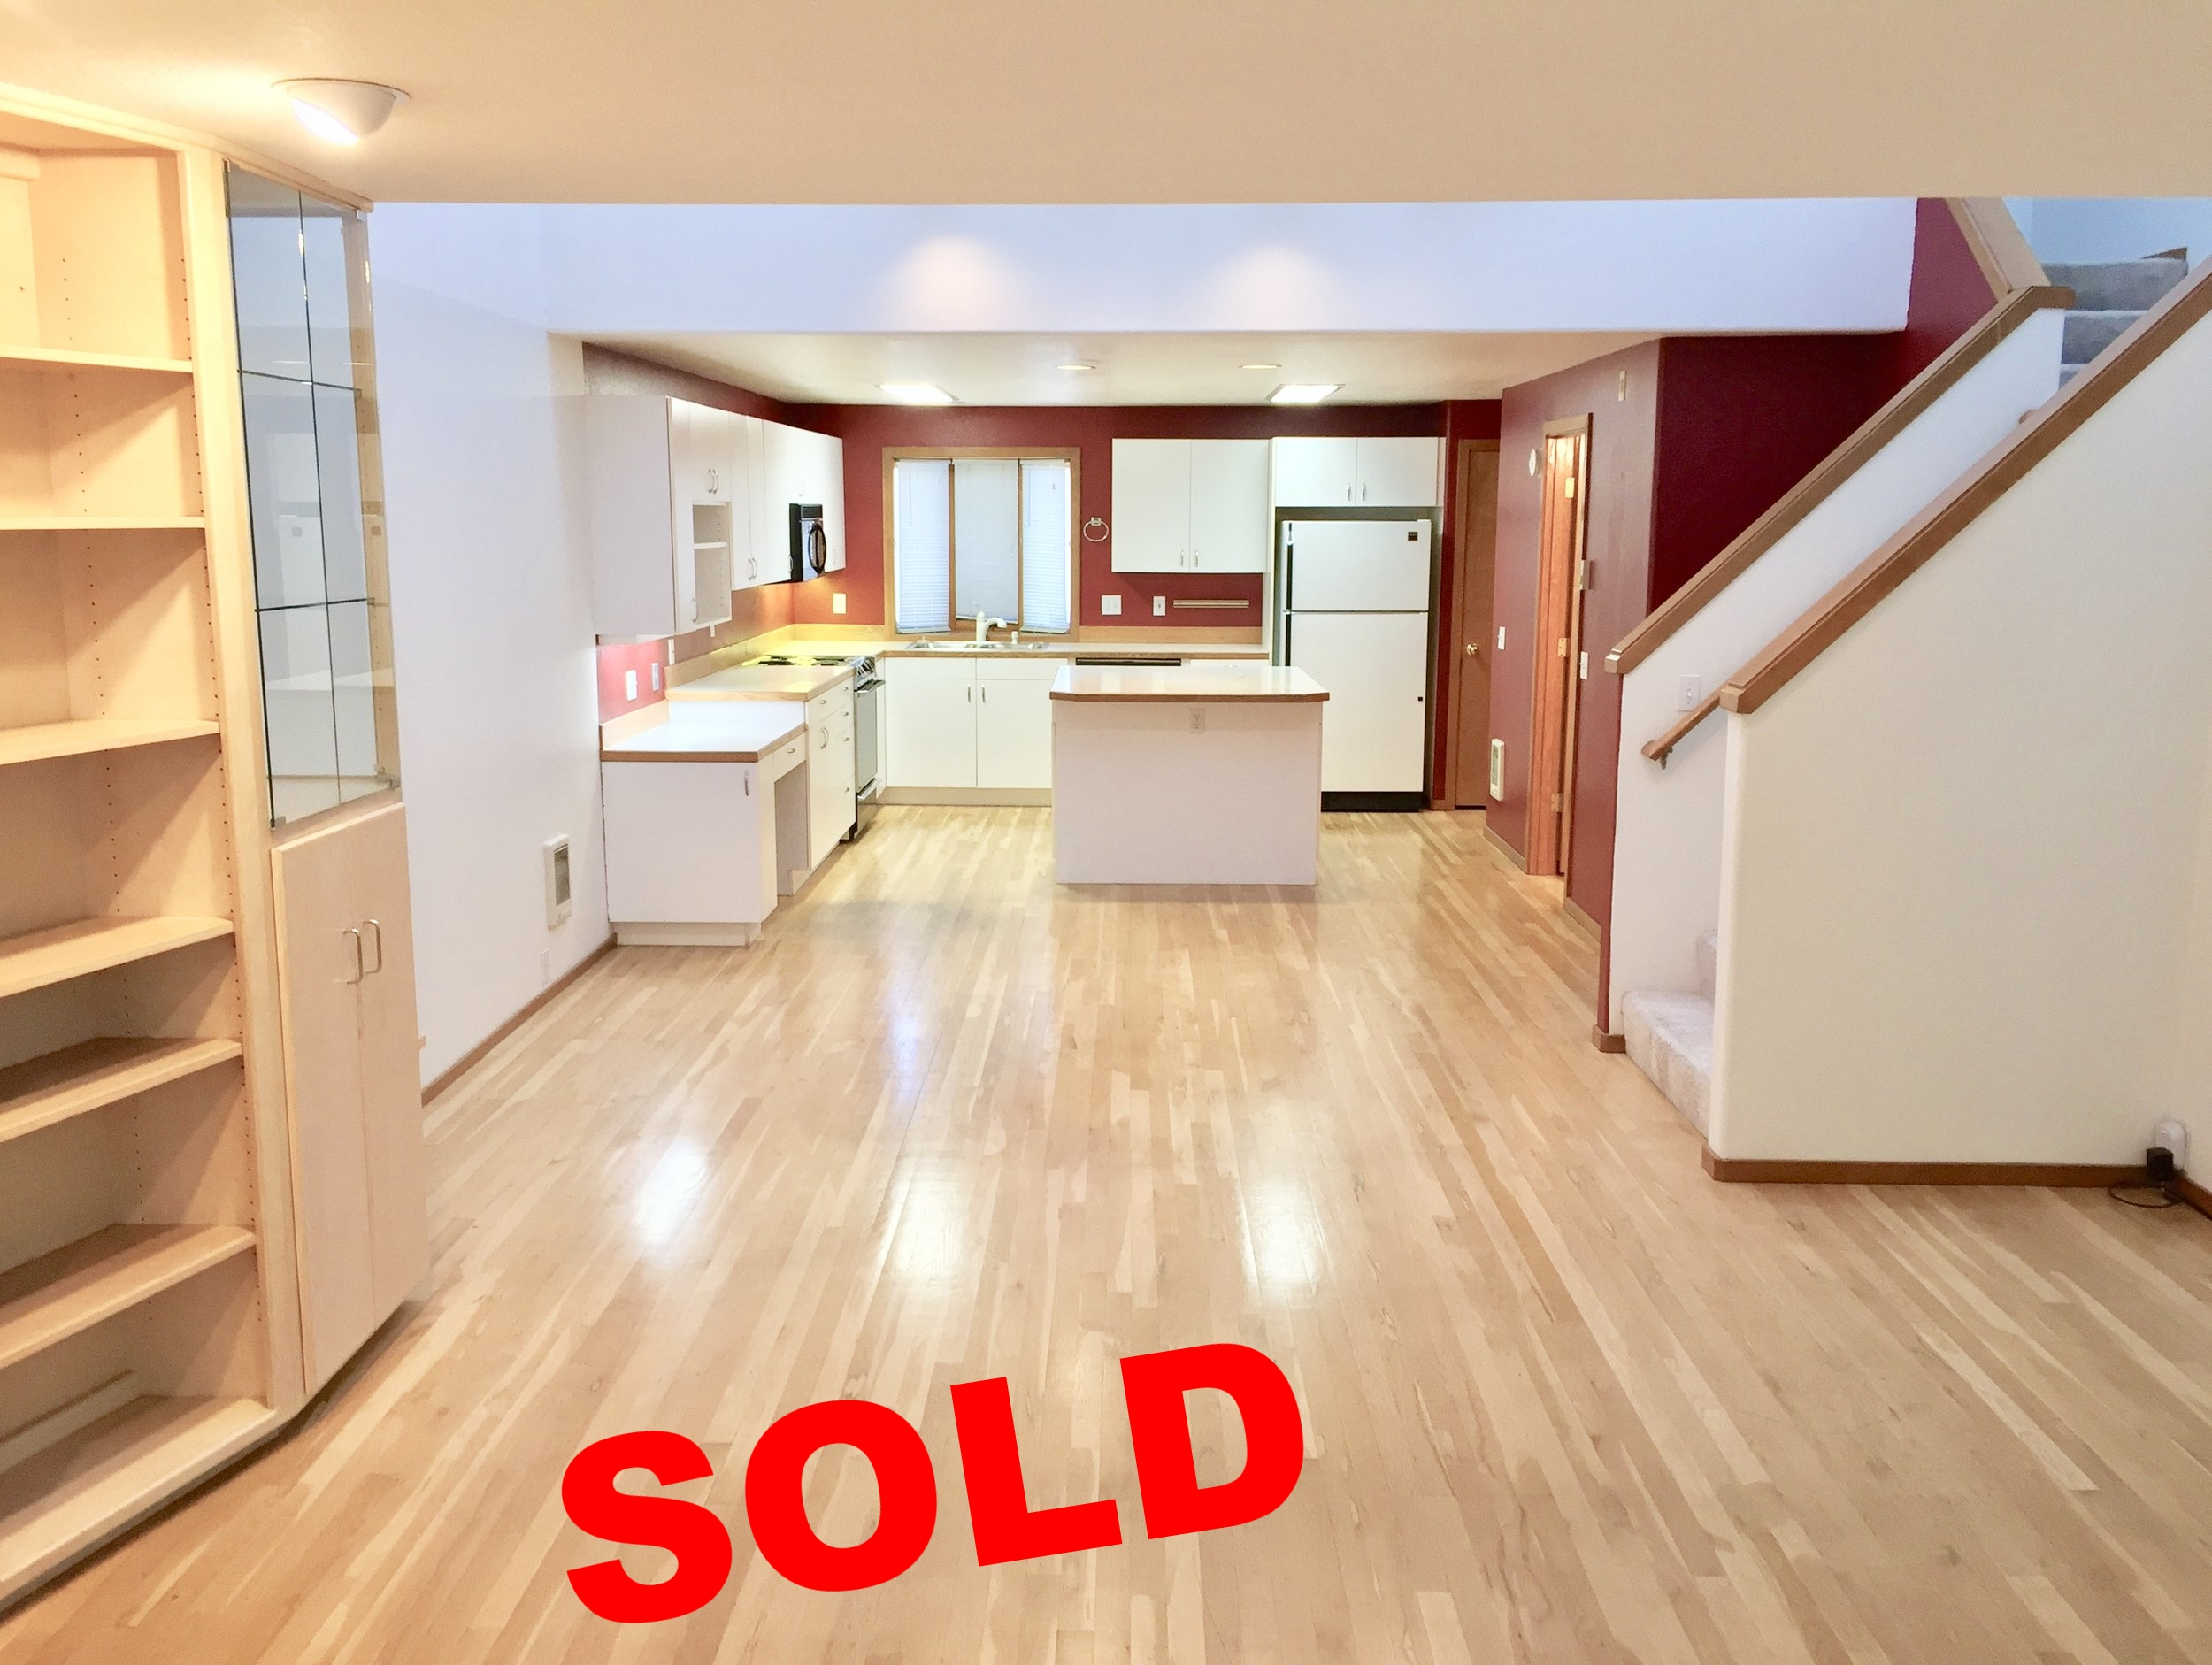 Sold!1050 NE Butler Market Rd. #39 - $214,000This spacious, conveniently located condo went pending in a little over a week and closed in just over 30 days.